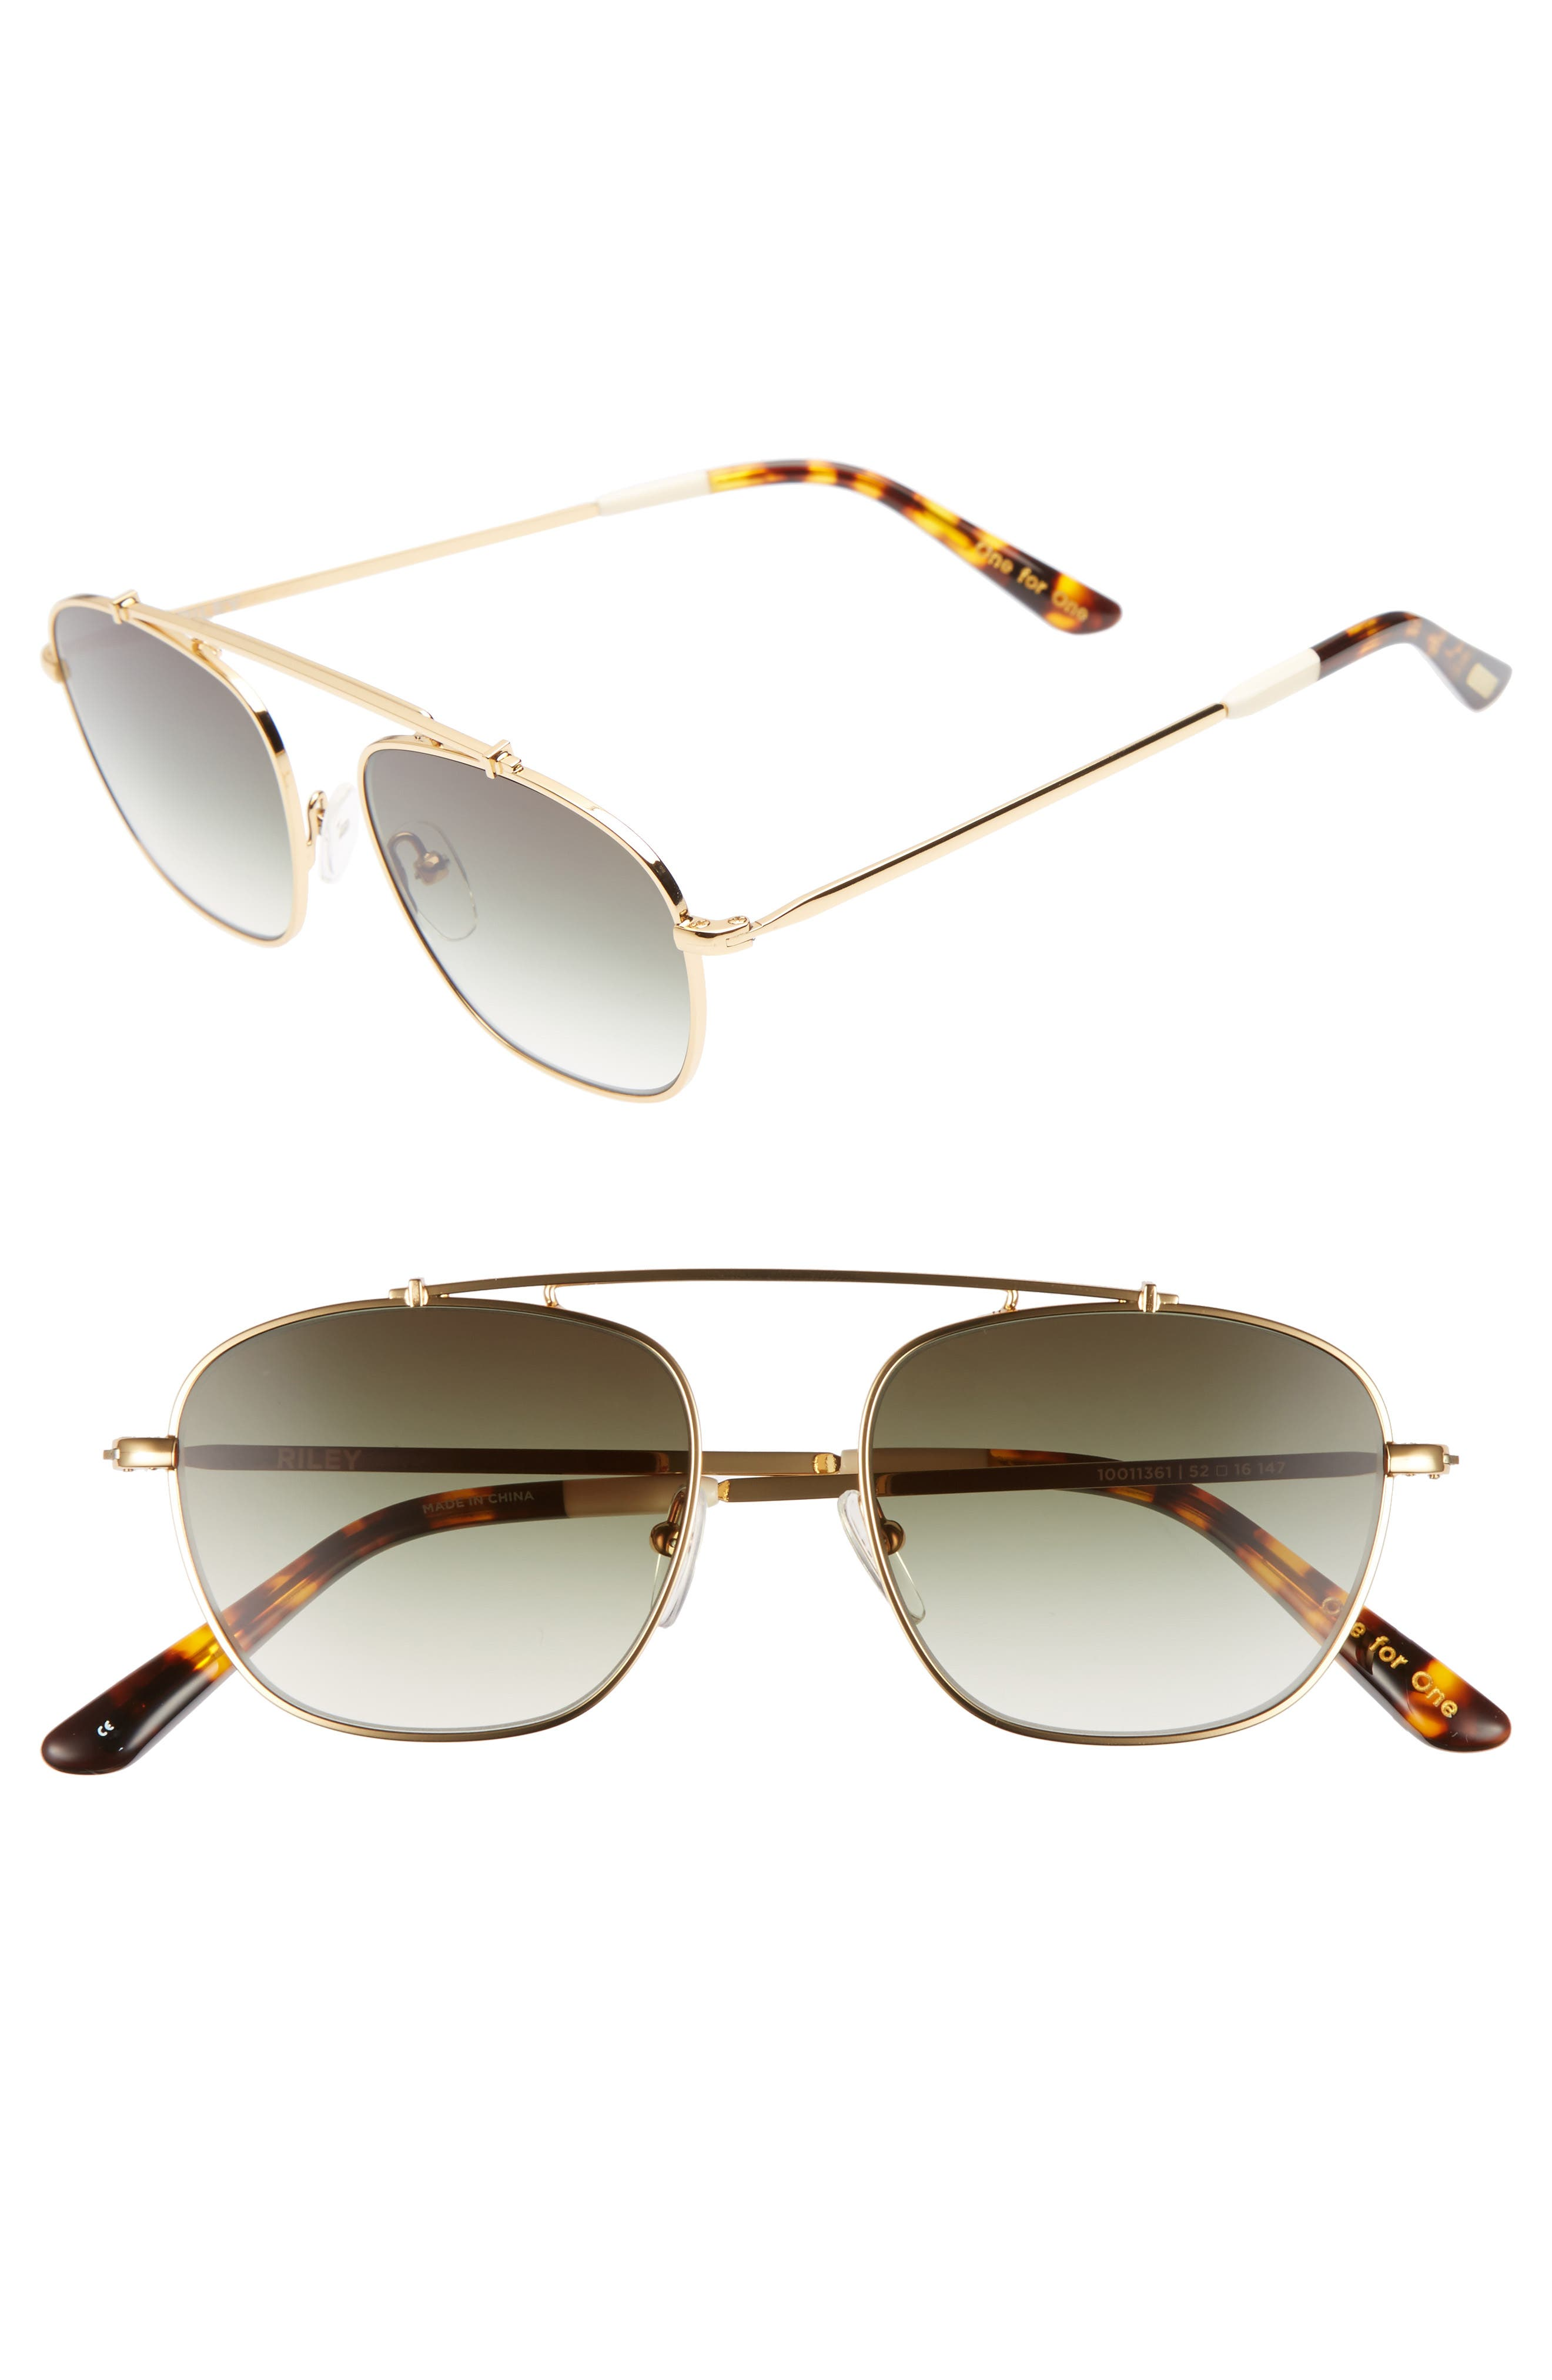 Riley 52mm Sunglasses,                         Main,                         color, Shiny Gold